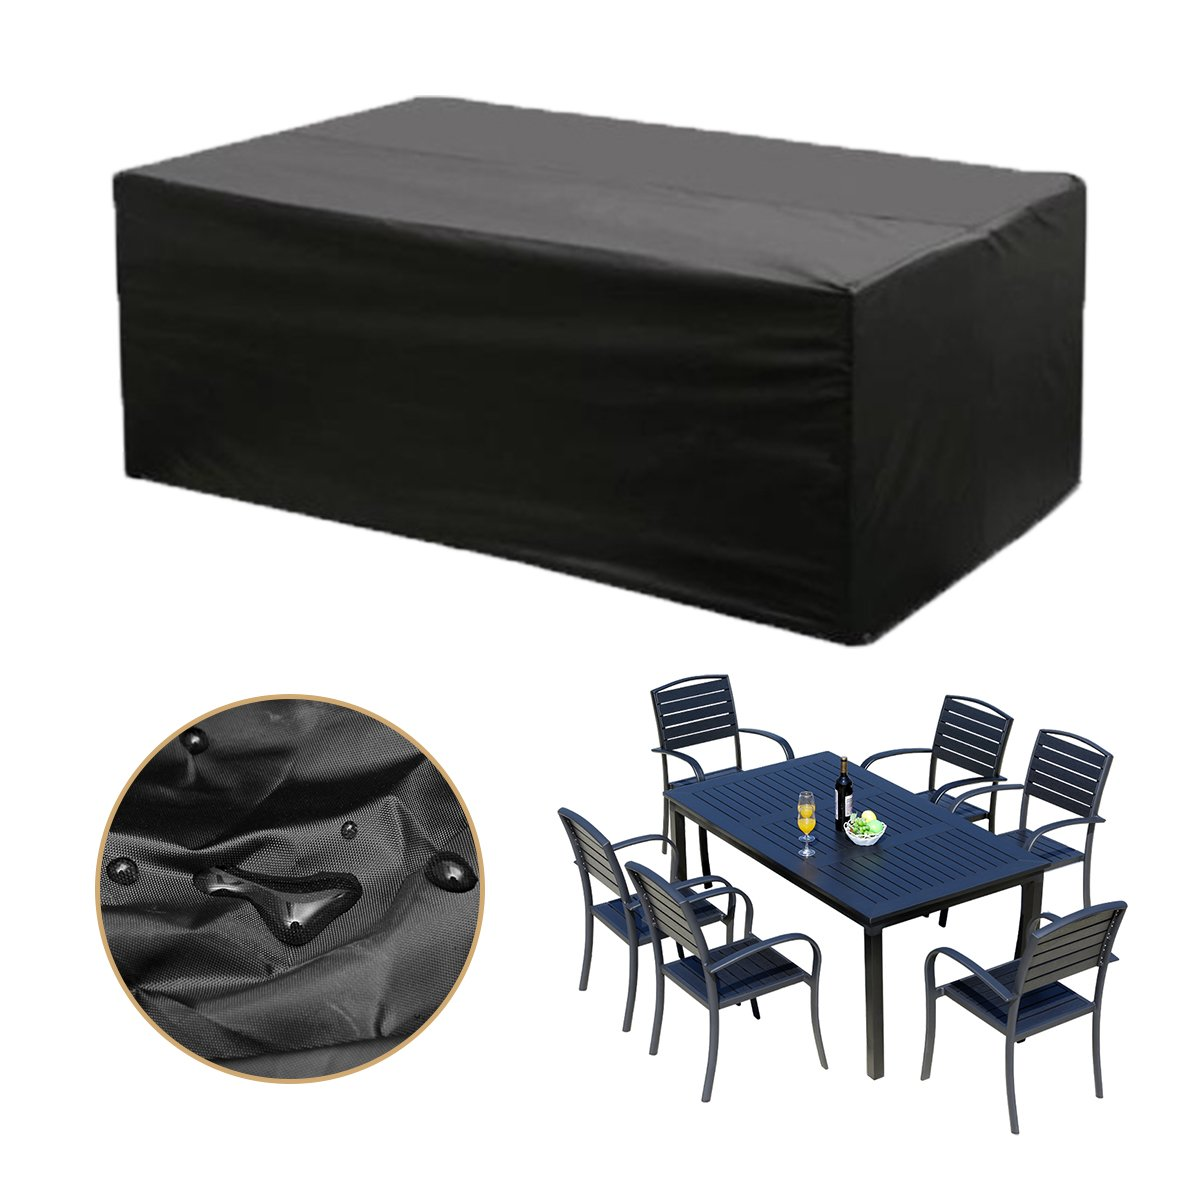 Strong-Willed Waterproof Outdoor Patio Garden Furniture Cover Rain Snow Garden Patio Home Furniture Cover Home Furniture Cover Sofa Protection Dust Covers All-purpose Covers